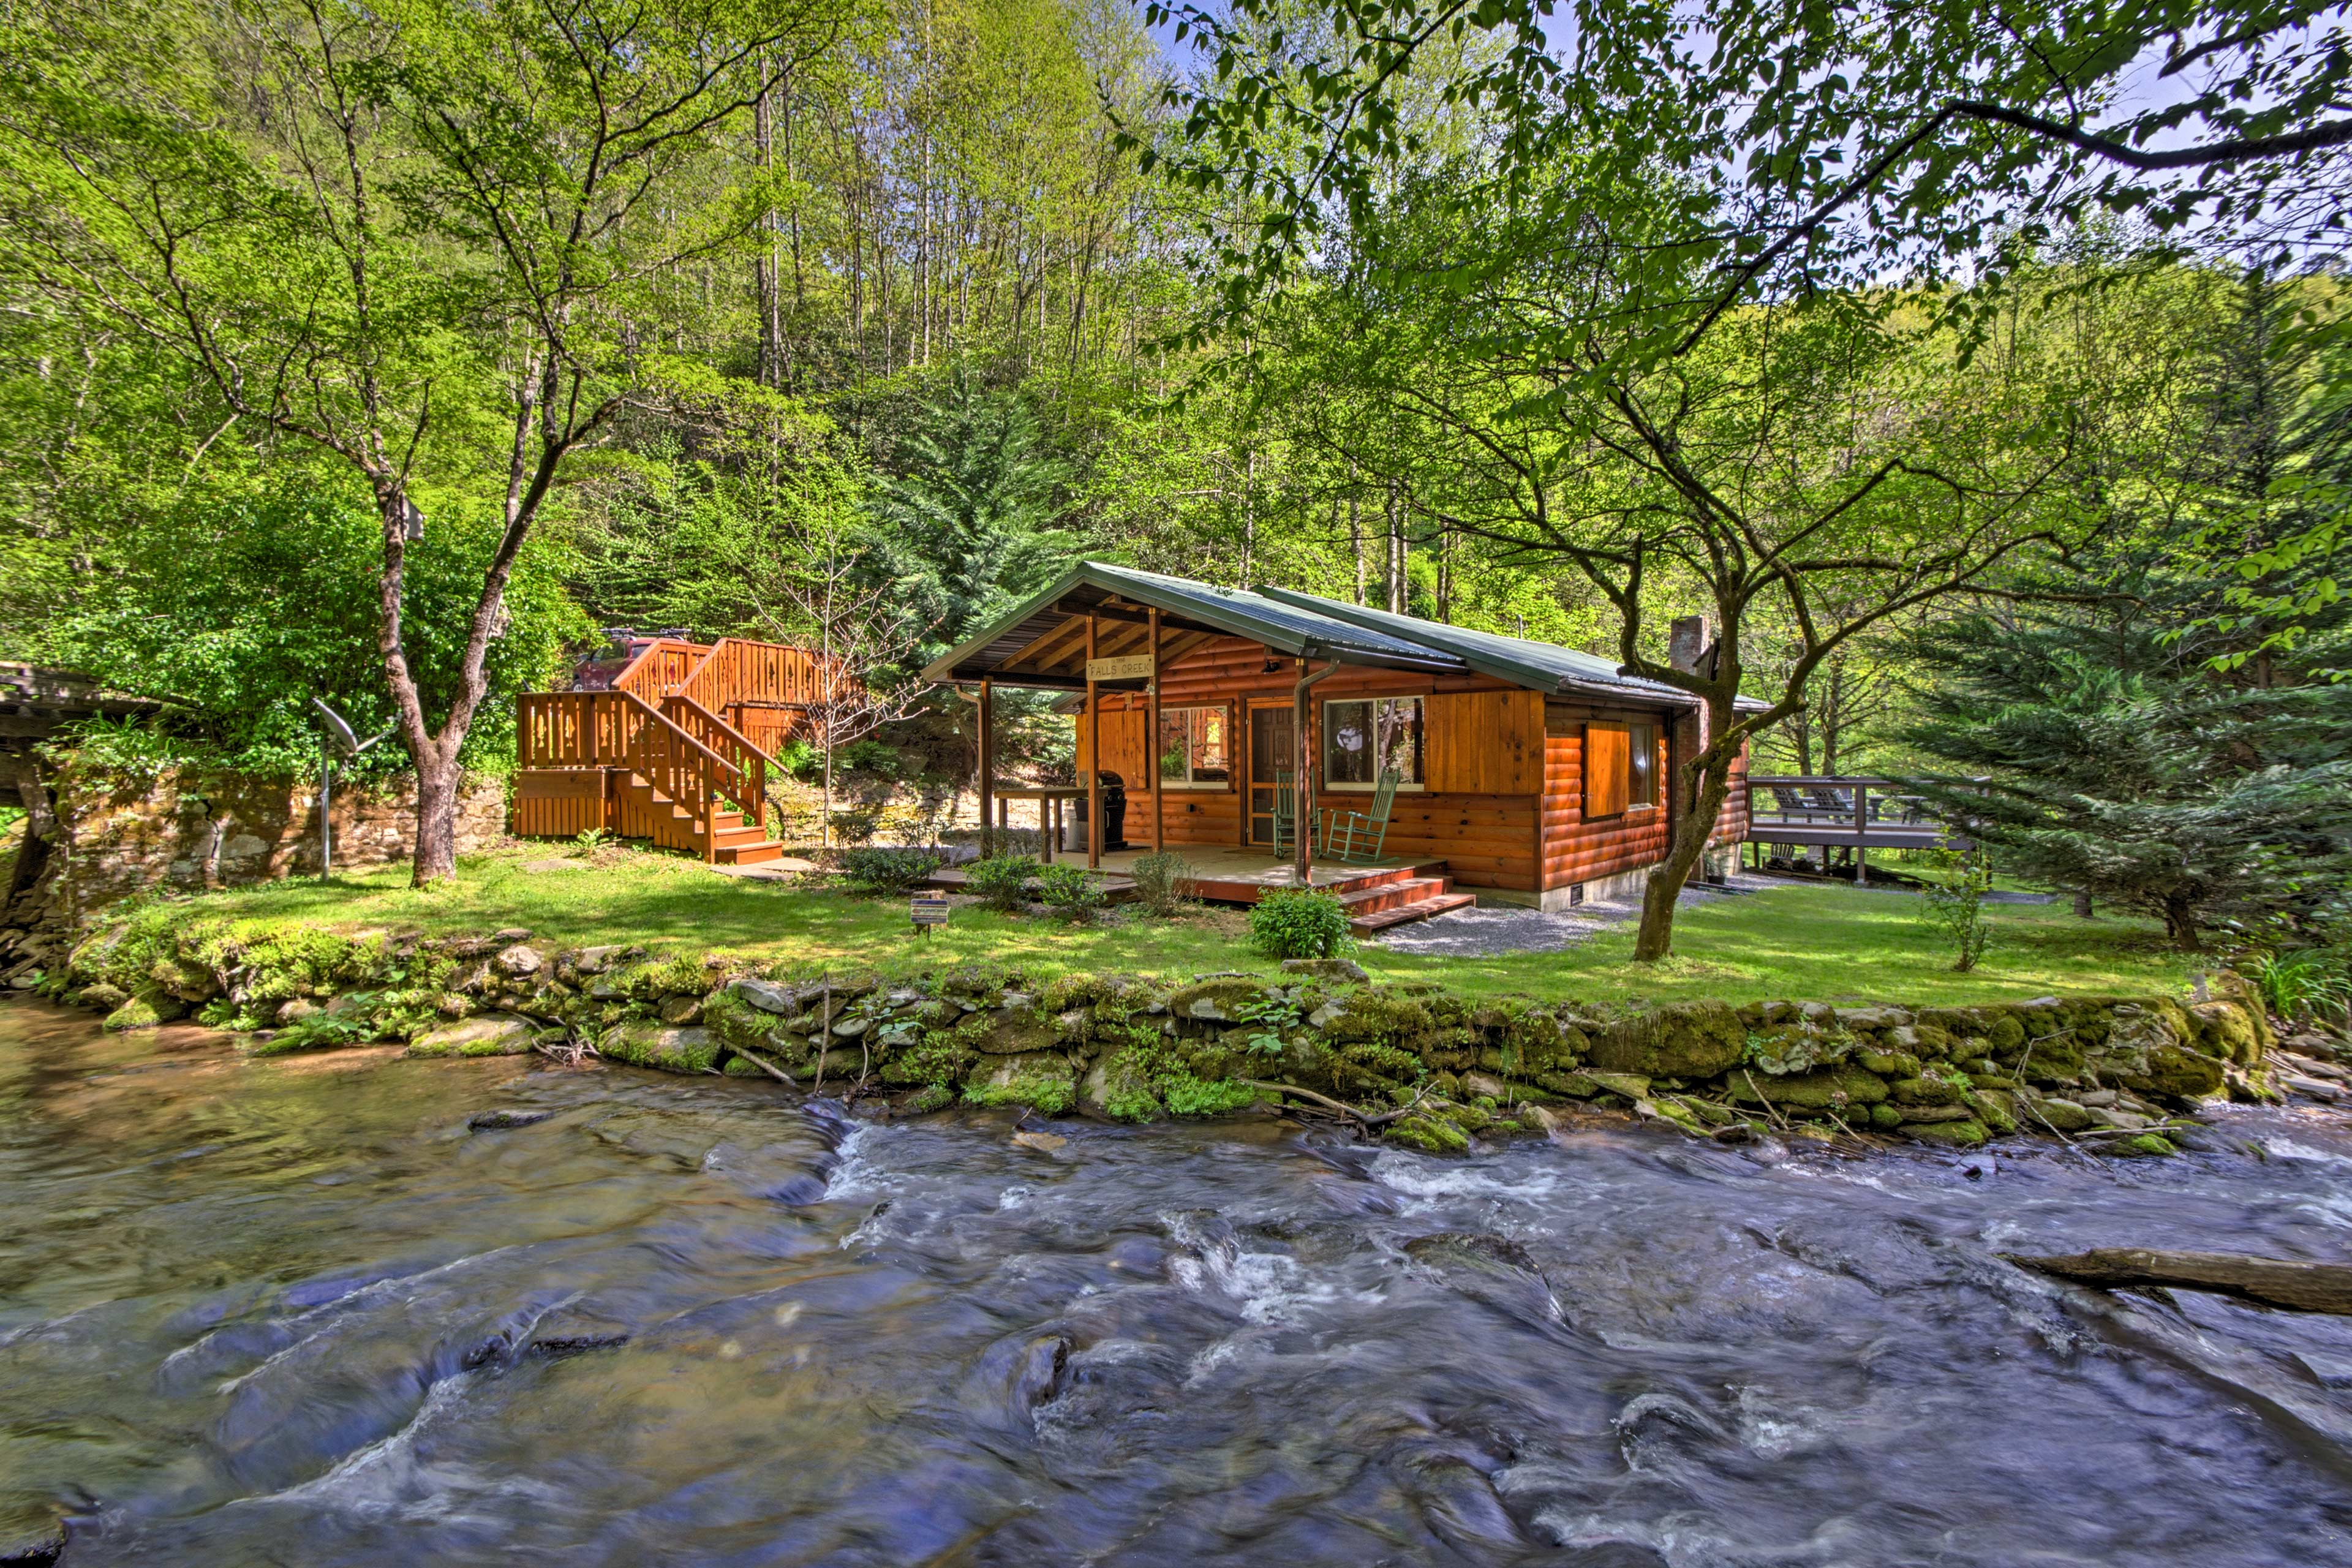 Clear your calendar for a trip to this Bryson City vacation rental cabin!